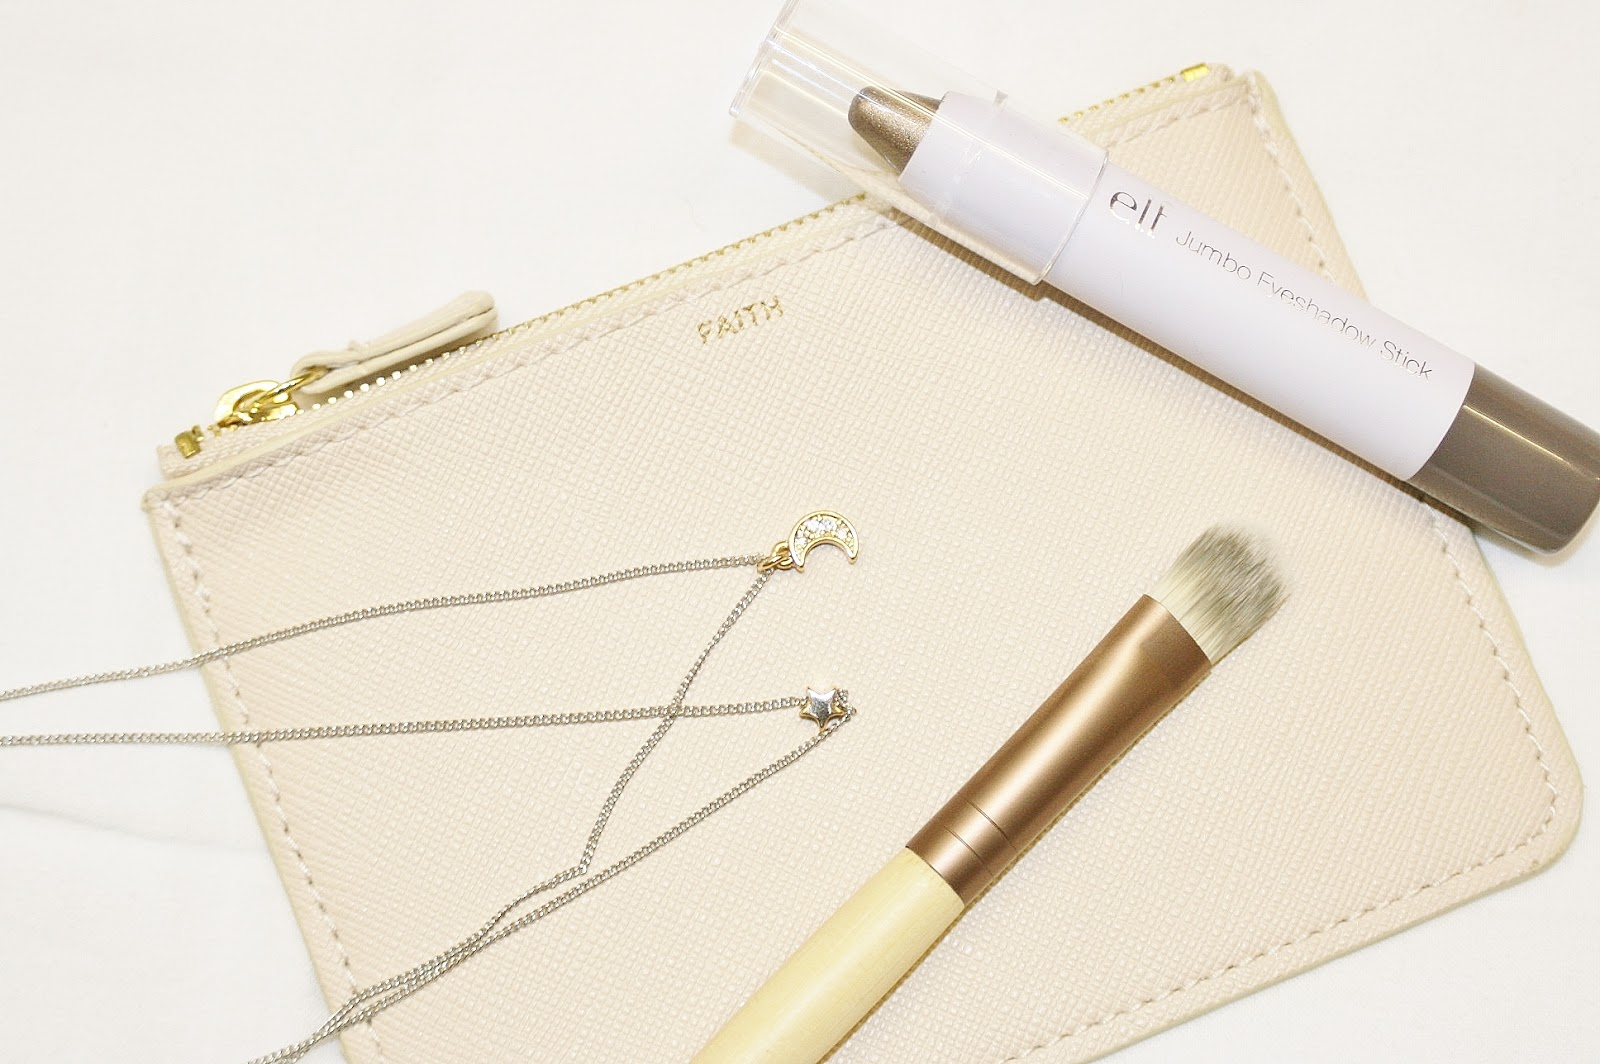 Penney Chic shopping haul H&M beauty makeup jewellery